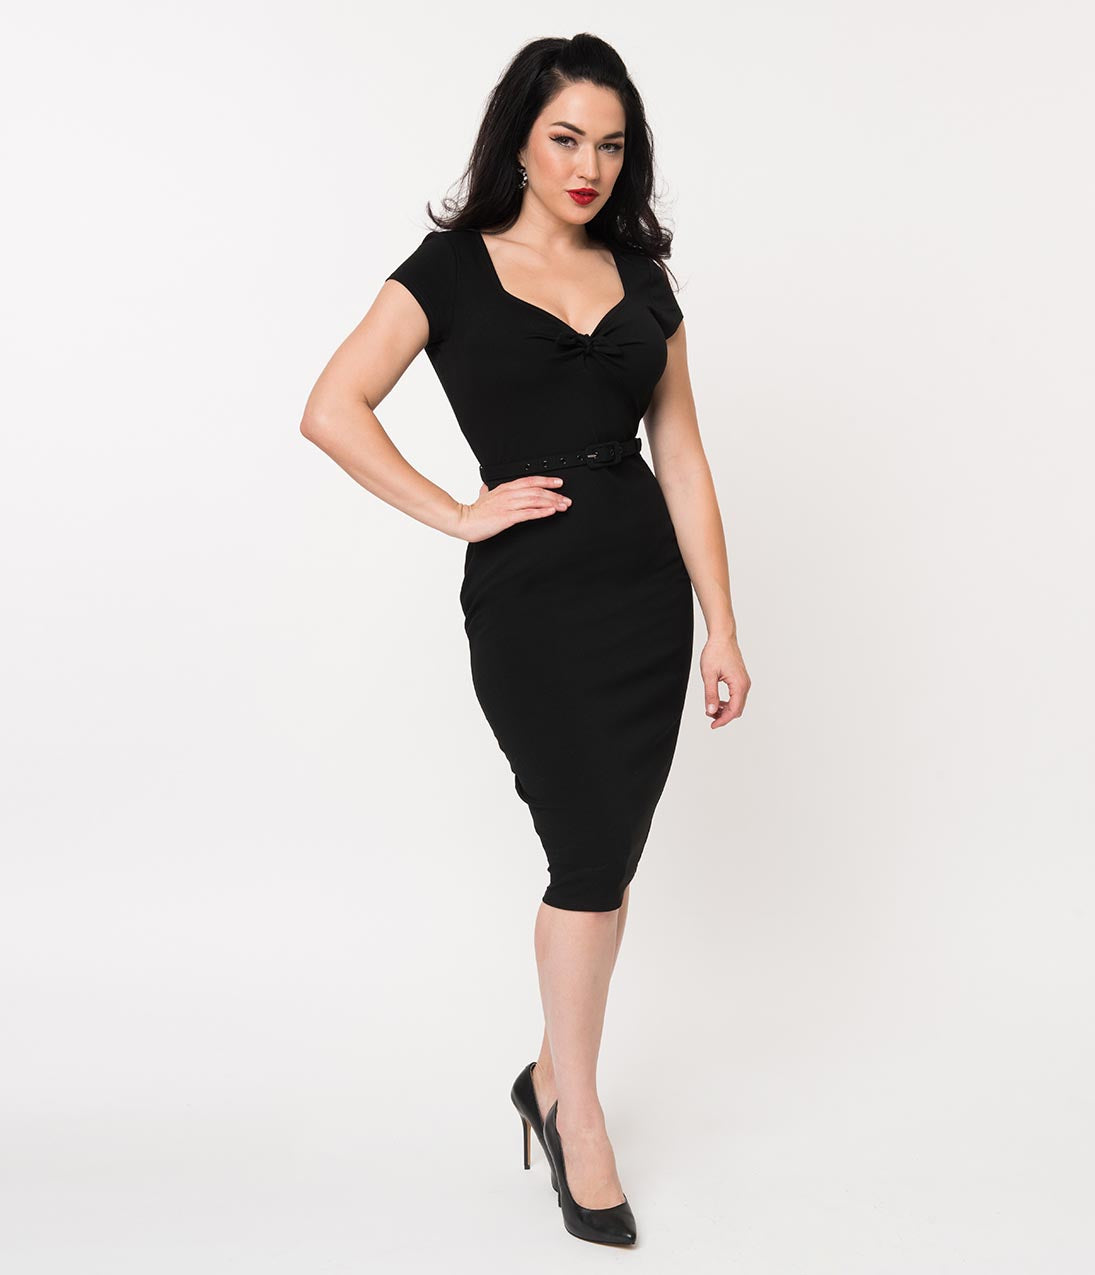 500 Vintage Style Dresses for Sale | Vintage Inspired Dresses Unique Vintage 1950S Black Sweetheart Stretch Knit Dianne Wiggle Dress $58.00 AT vintagedancer.com